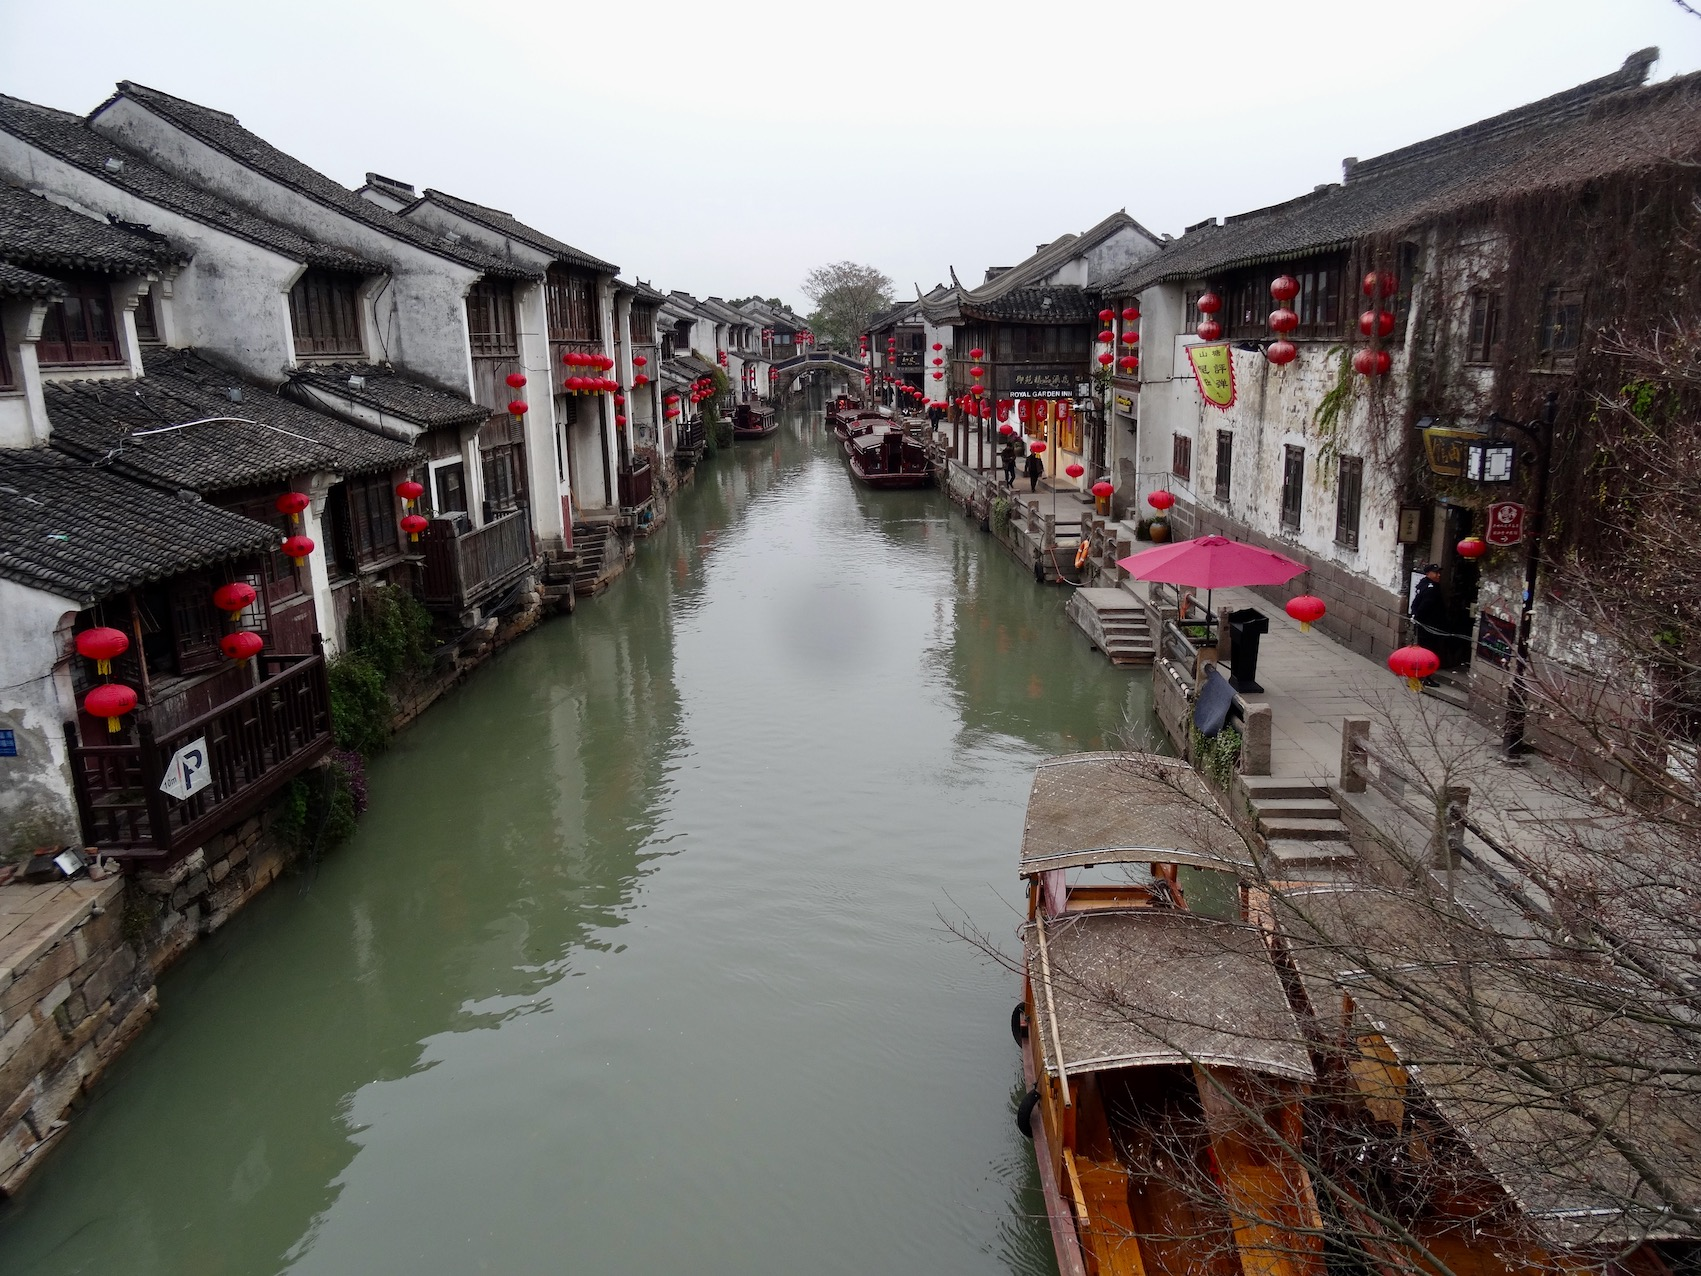 Things to see and do Suzhou Jiangsu Province China